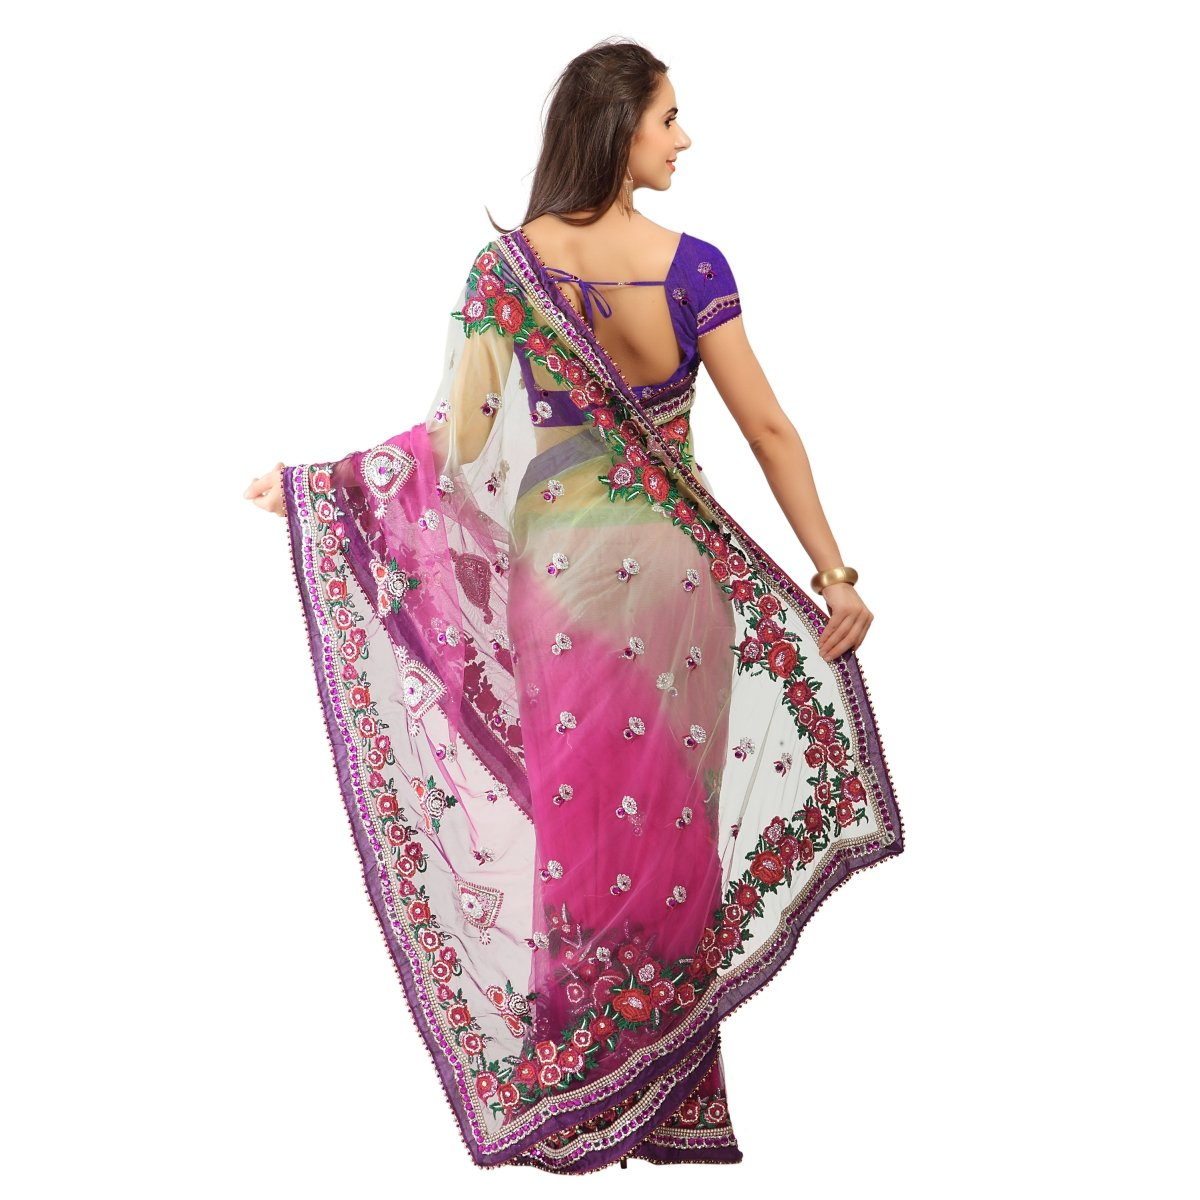 Triveni Women's Indian Pink Net Embroidered Sarees by Triveni (Image #3)